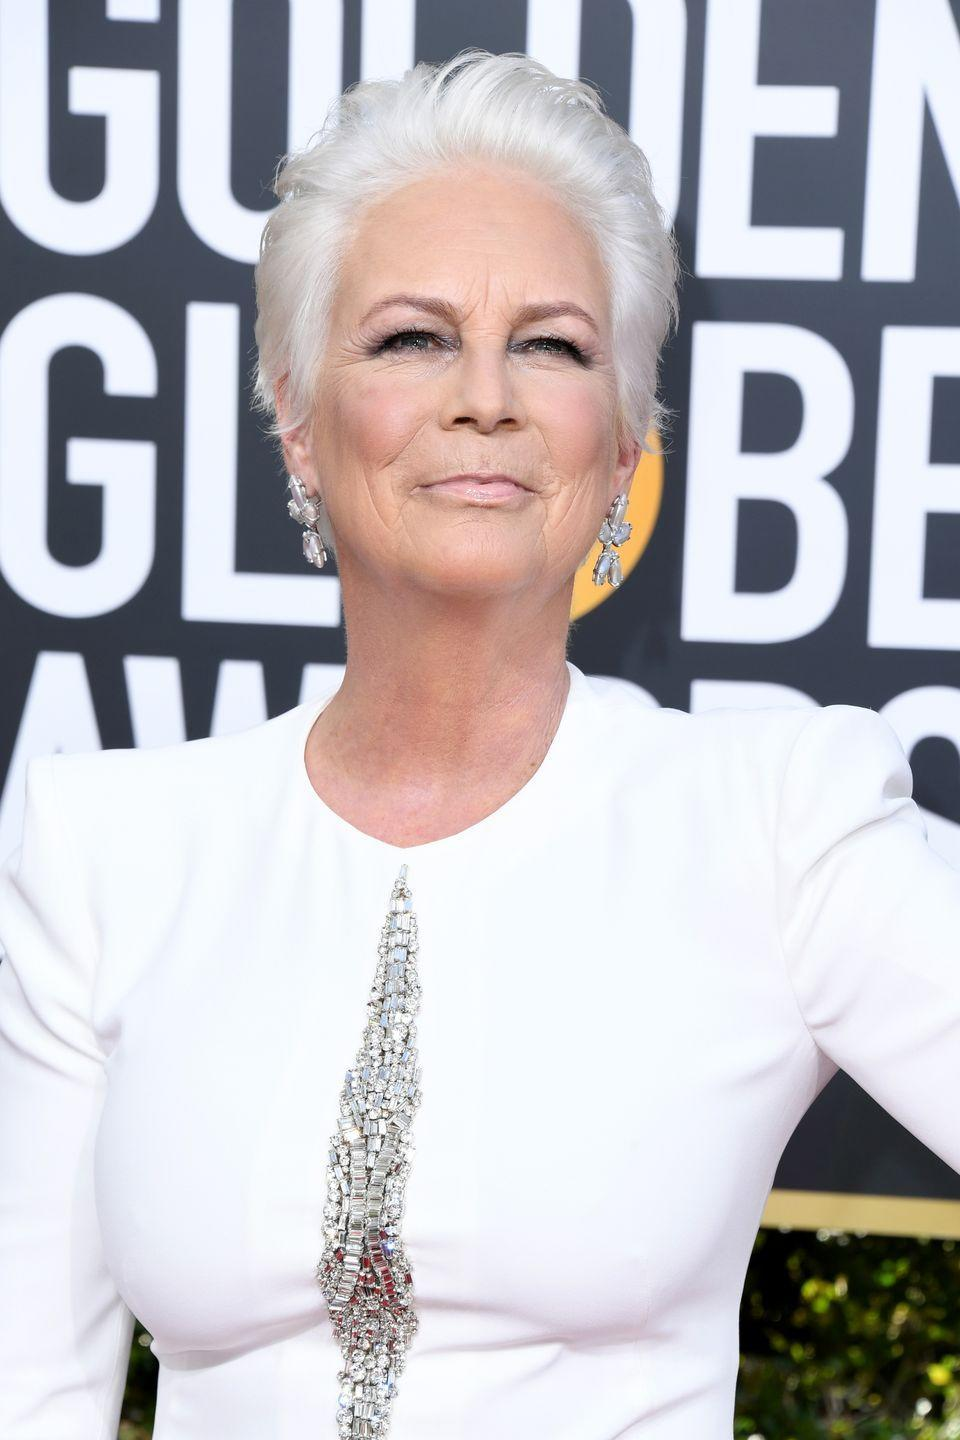 """<p>Icon Jamie Lee Curtis said she's had a little bit of everything when it comes to plastic surgery but that people shouldn't waste their money. 'I've done it all. I've had a little plastic surgery,' <a href=""""https://www.telegraph.co.uk/news/worldnews/northamerica/usa/1405016/Nips-tucks-and-liposuction-dont-work-Ive-still-got-bad-thighs-and-a-fat-tummy.html"""" rel=""""nofollow noopener"""" target=""""_blank"""" data-ylk=""""slk:she said"""" class=""""link rapid-noclick-resp"""">she said</a>. 'I've had a little lipo. I've had a little Botox. And you know what? None of it works. None of it.'</p>"""